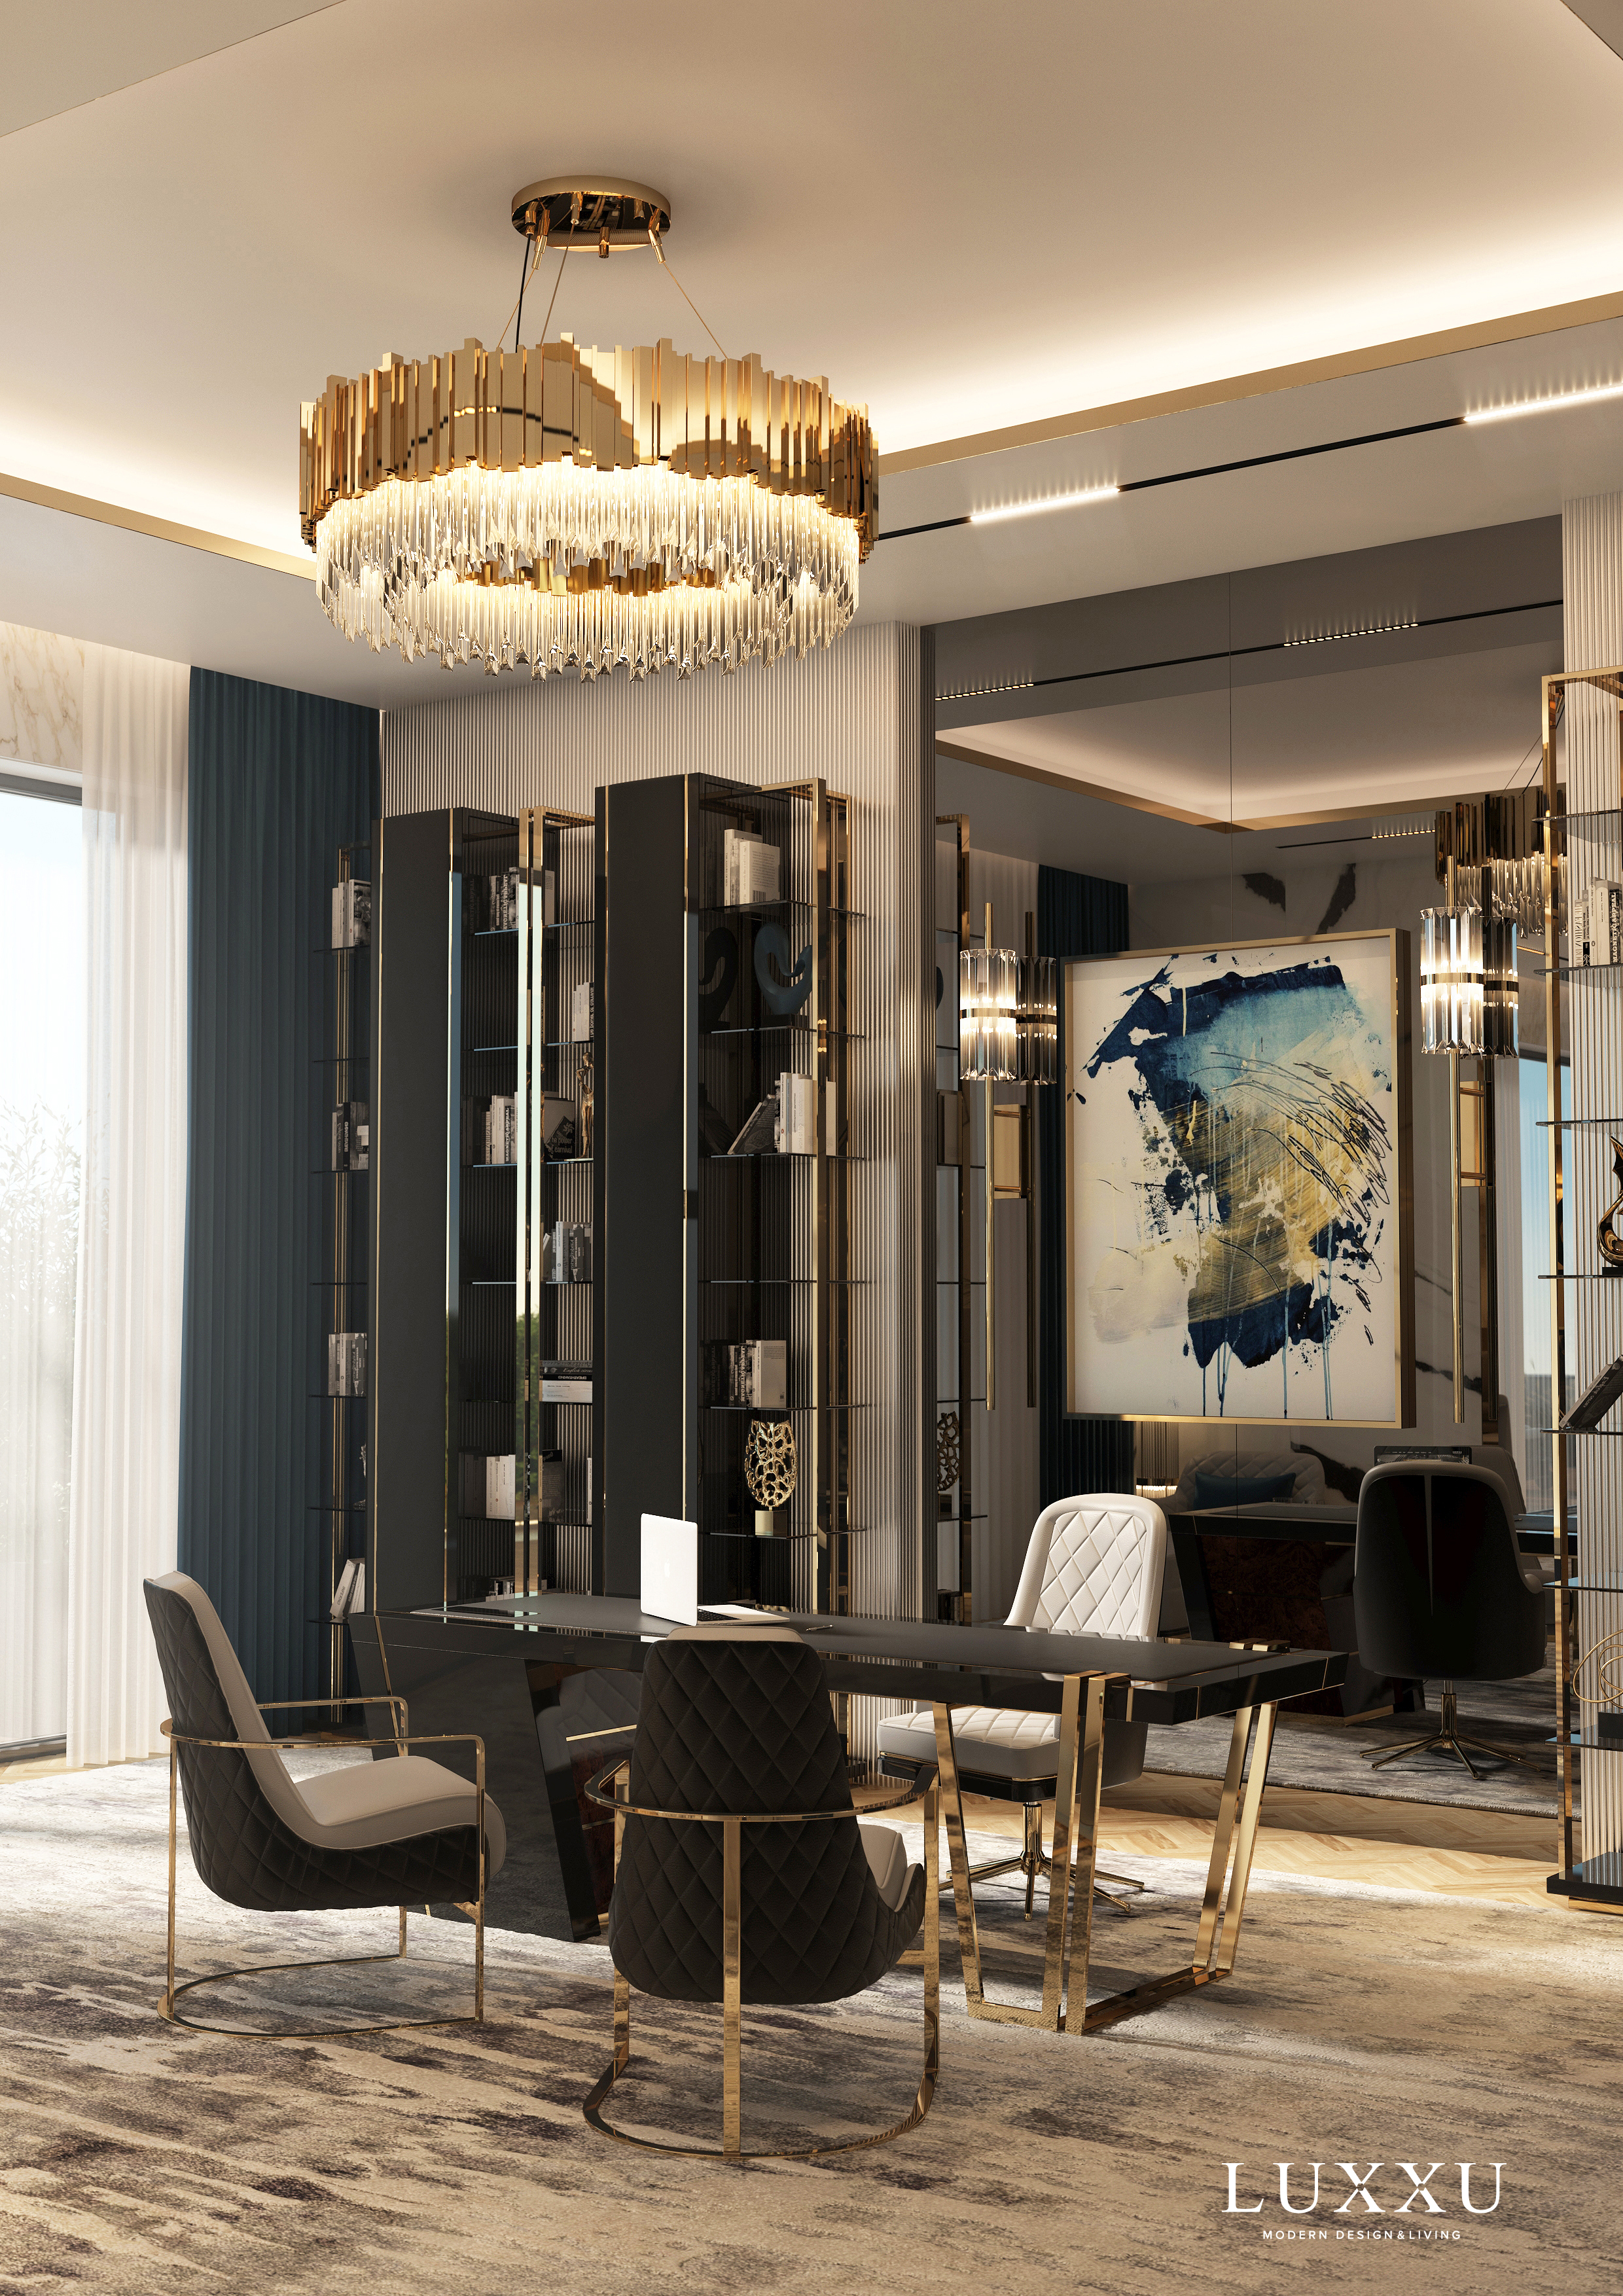 Admire luxxu's apartment in Moscow